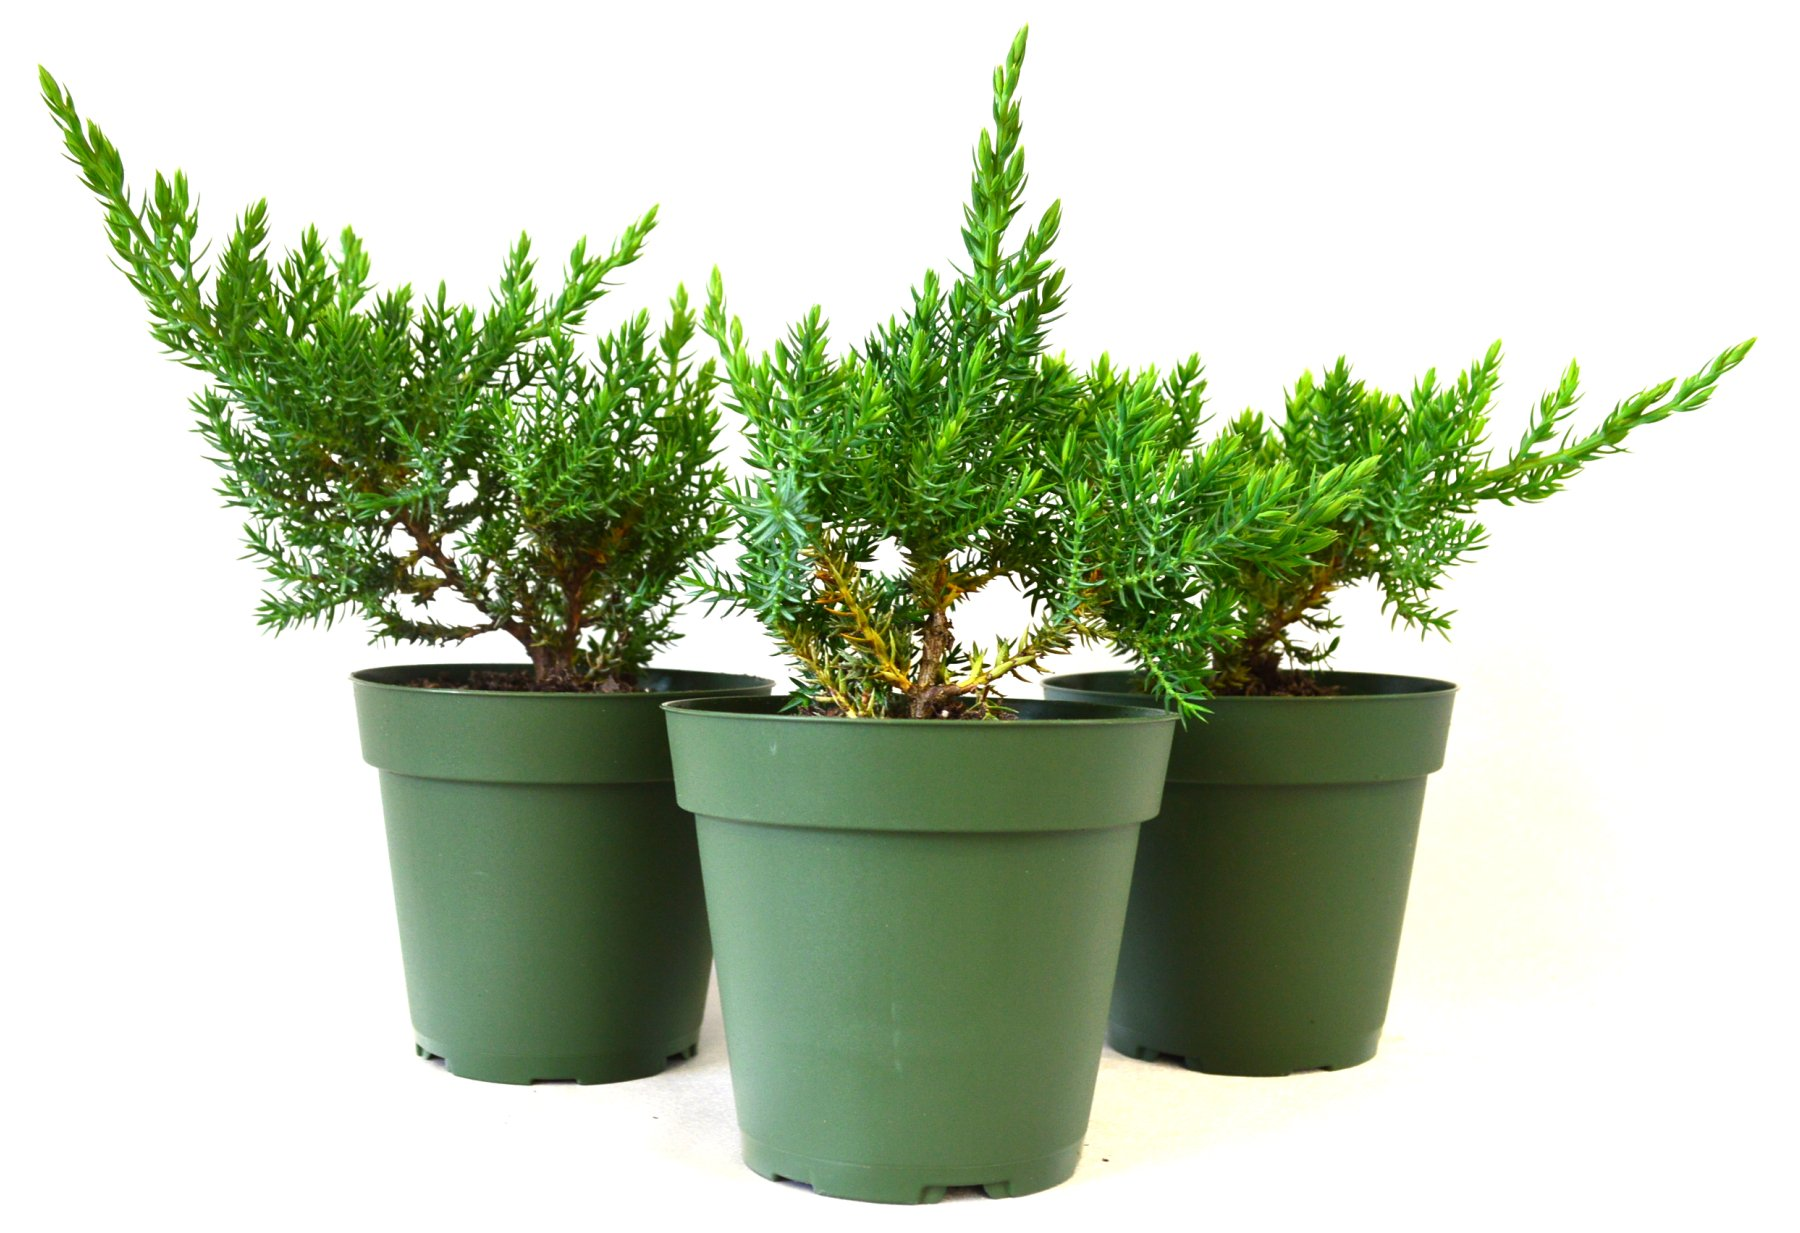 9Greenbox Juniper Procumbens Nana Bonsai Starter Plant,3 Pound (Pack of 3)